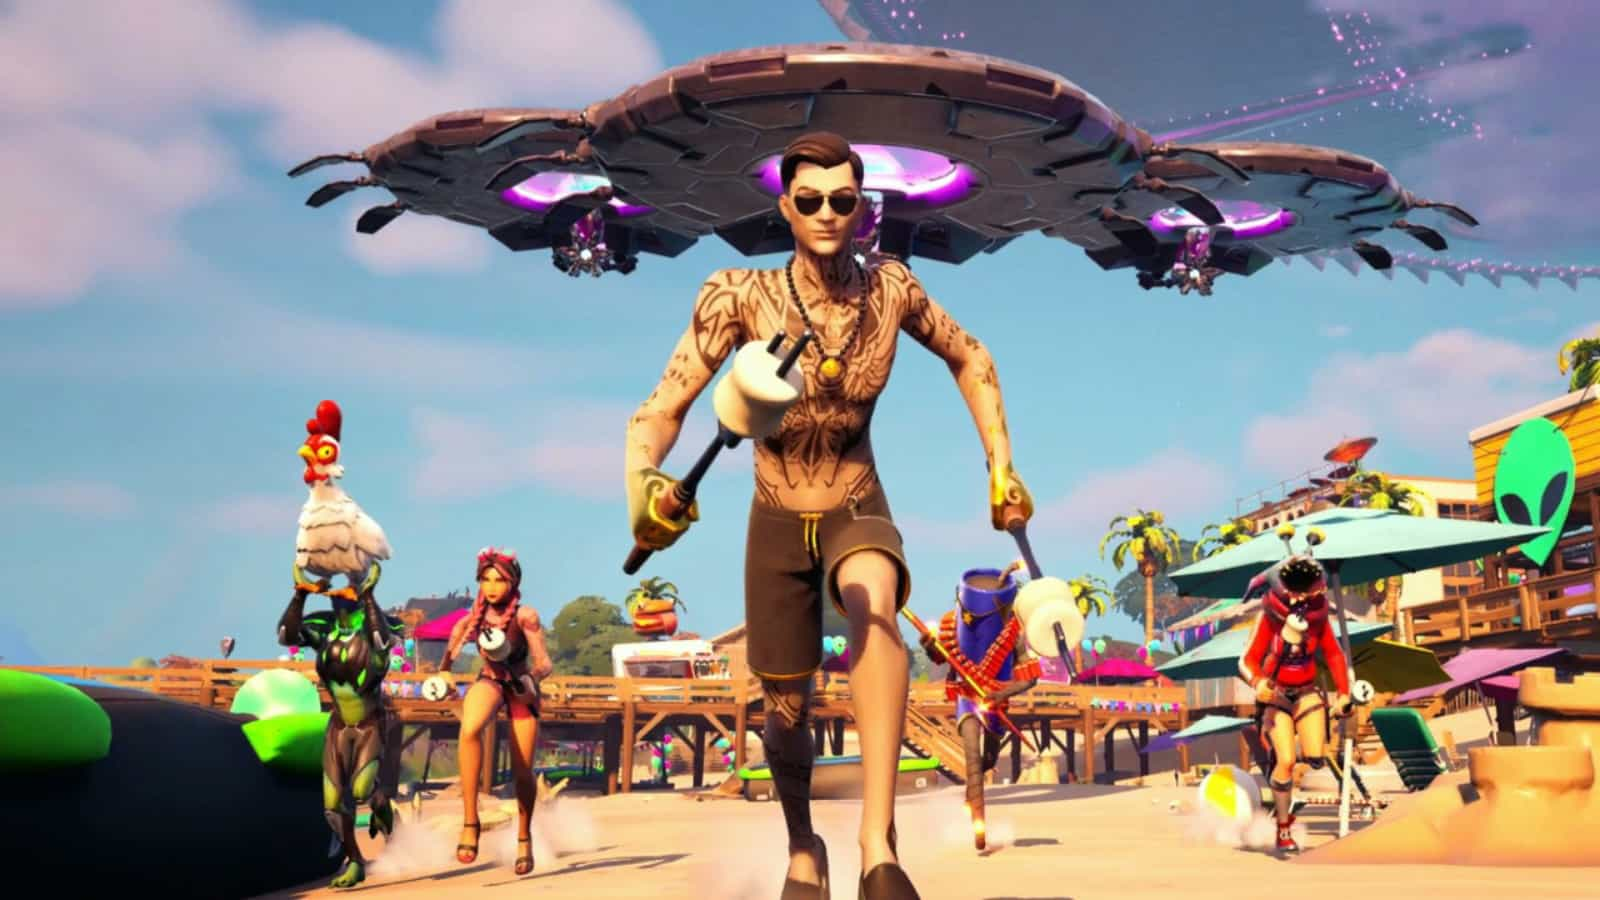 Fortnite Cosmic Summer Quests: All About Challenges and Their Rewards